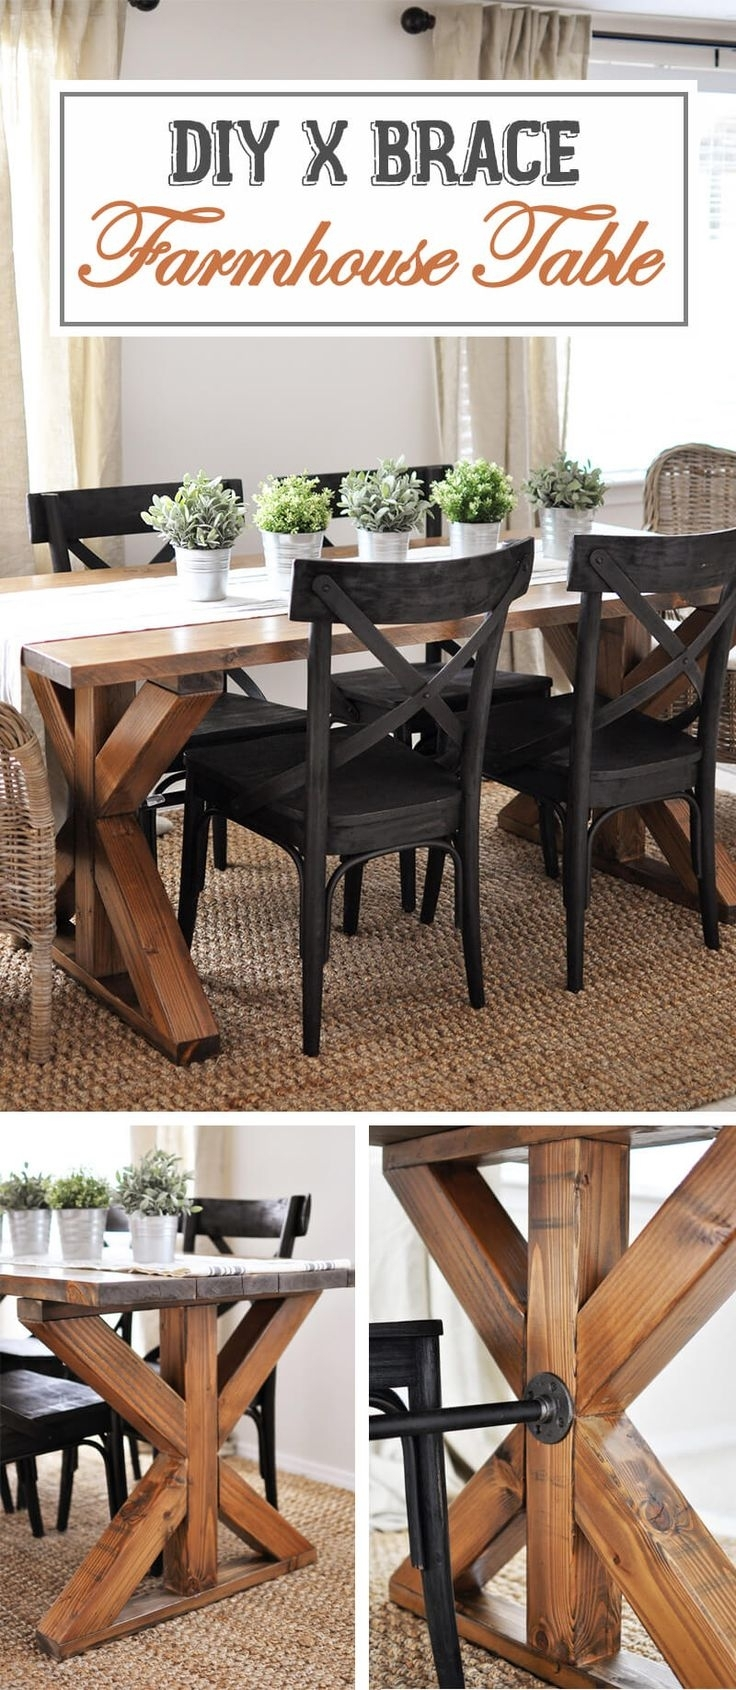 287 Best Furniture Images On Pinterest | Woodworking, Furniture And Throughout Most Recent Wyatt 7 Piece Dining Sets With Celler Teal Chairs (Image 2 of 20)